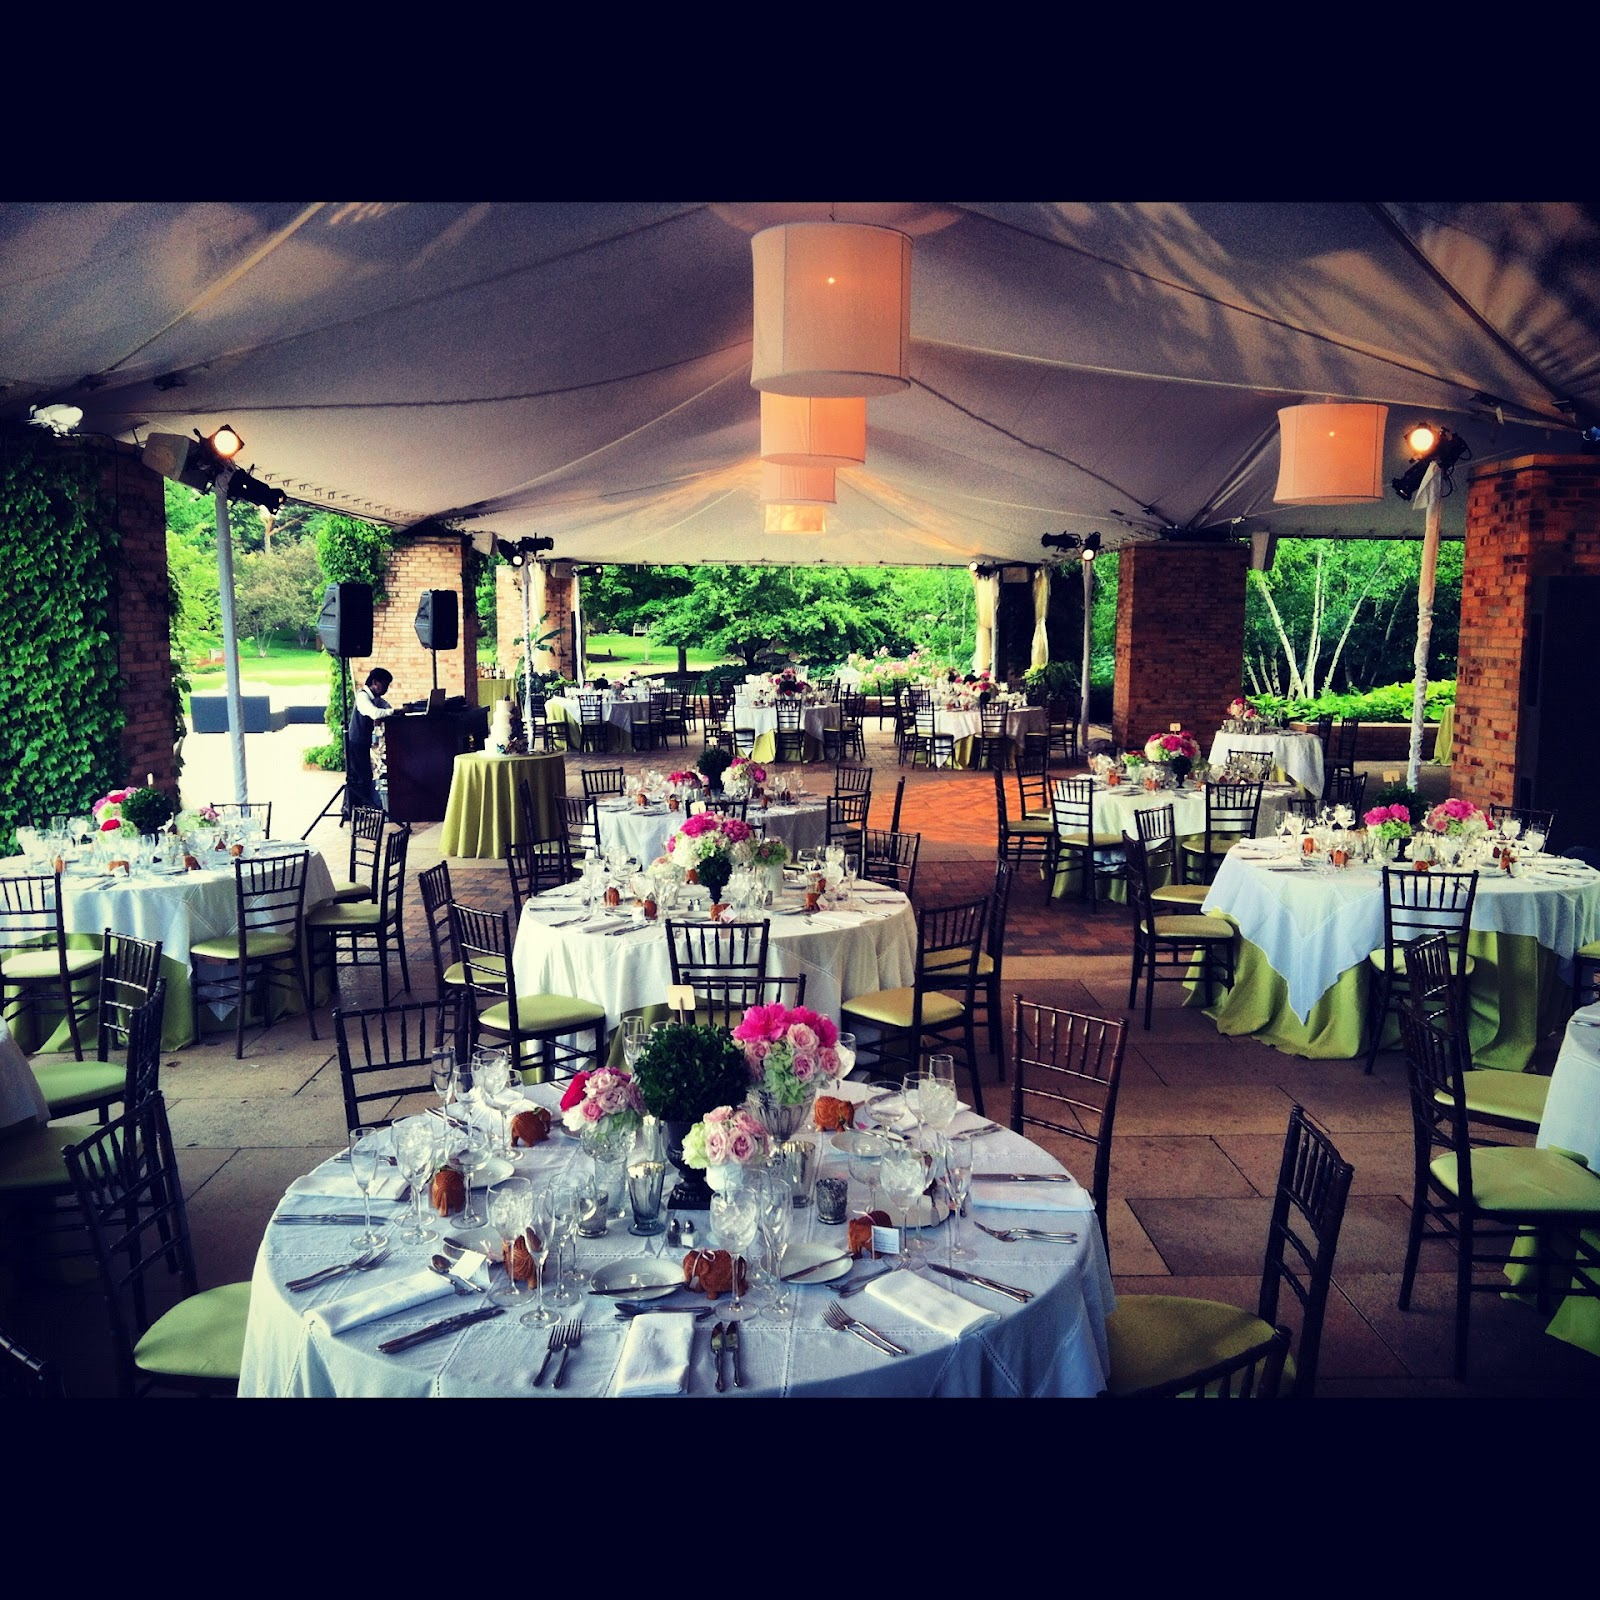 Botanical Gardens Wedding: Wedding Planners & Event Planners Chicago